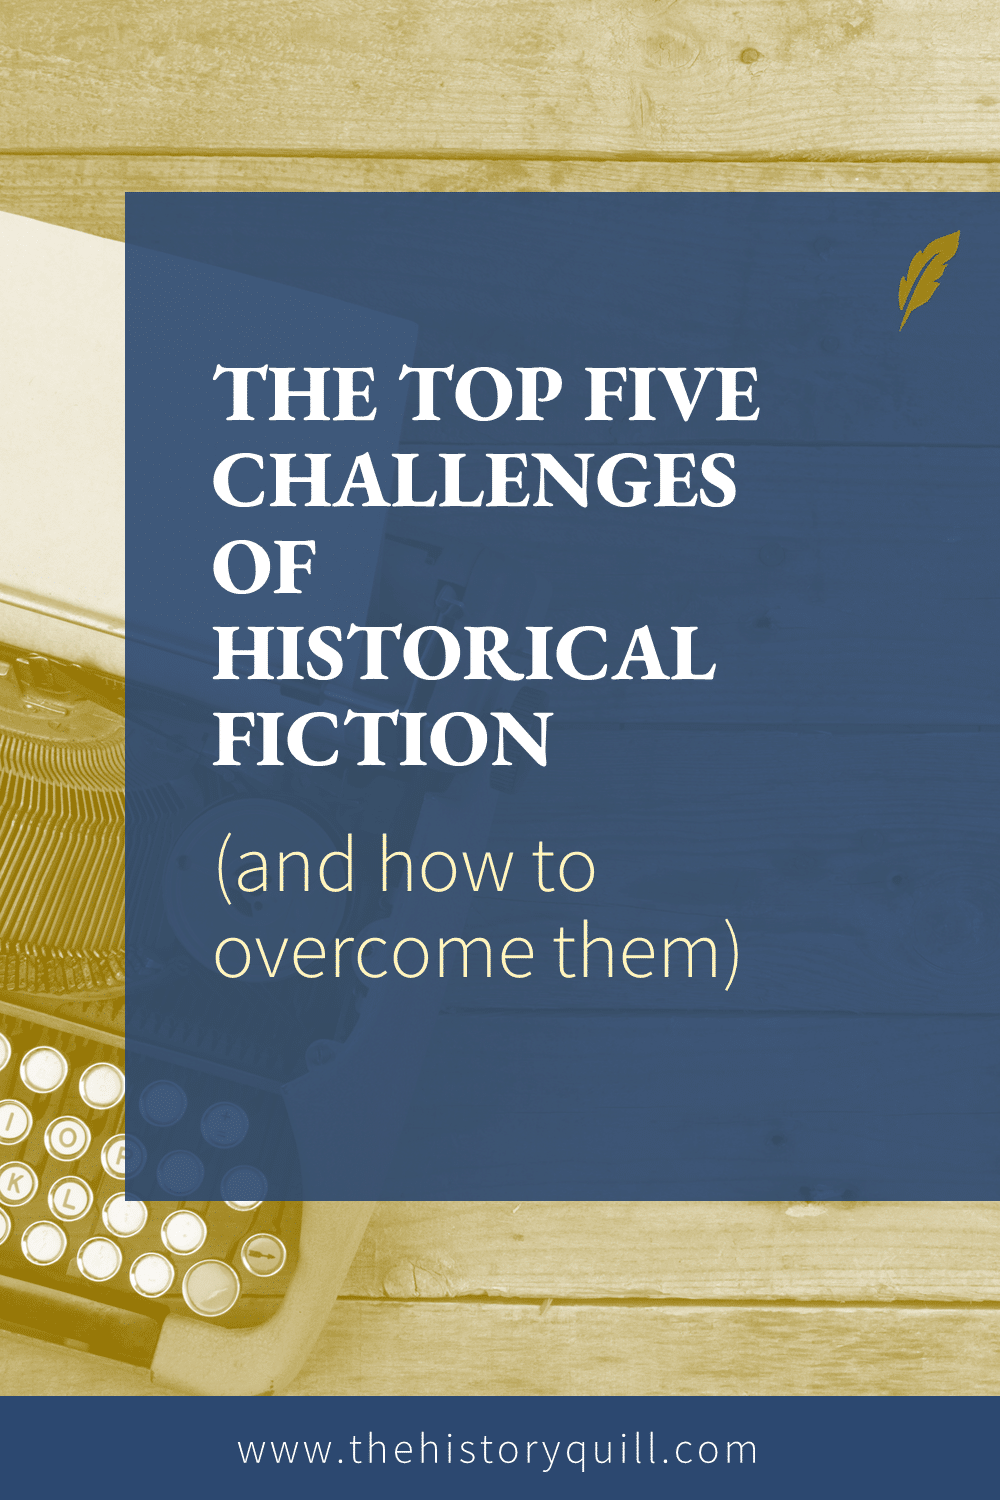 From The History Quill blog, the top five challenges of historical fiction (and how to overcome them)